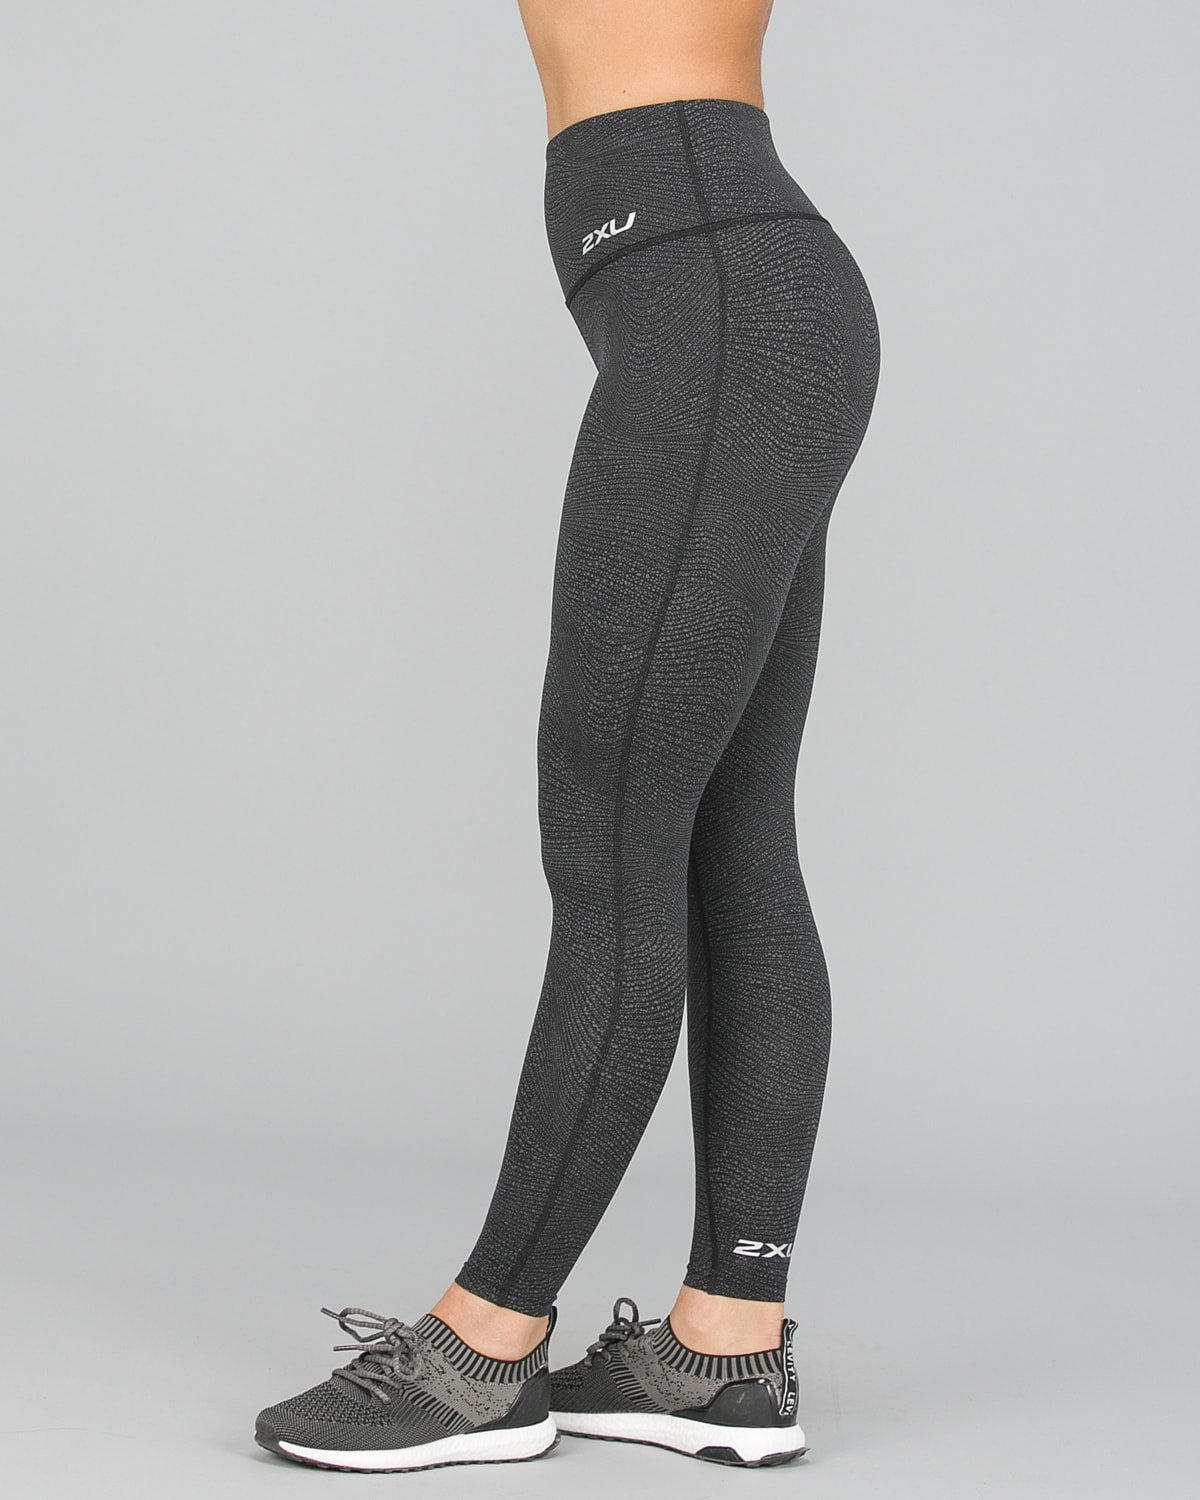 2XU Fitness Hi-Rise Comp Tights Women – Wave Spot Charcoal:Silver7